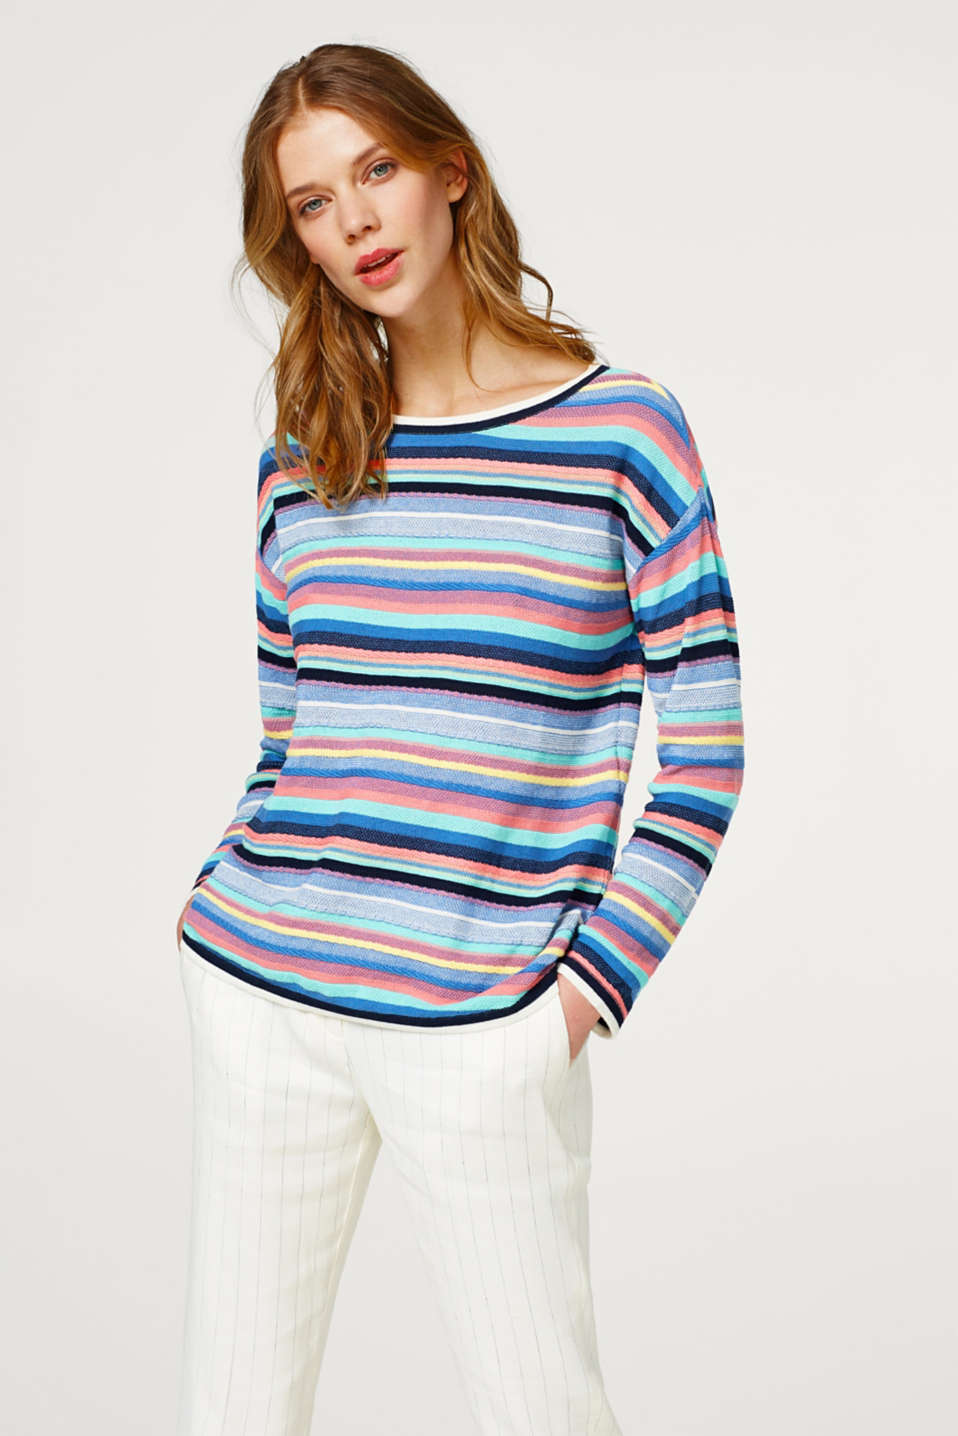 Esprit - Soft textured jumper, 100% cotton